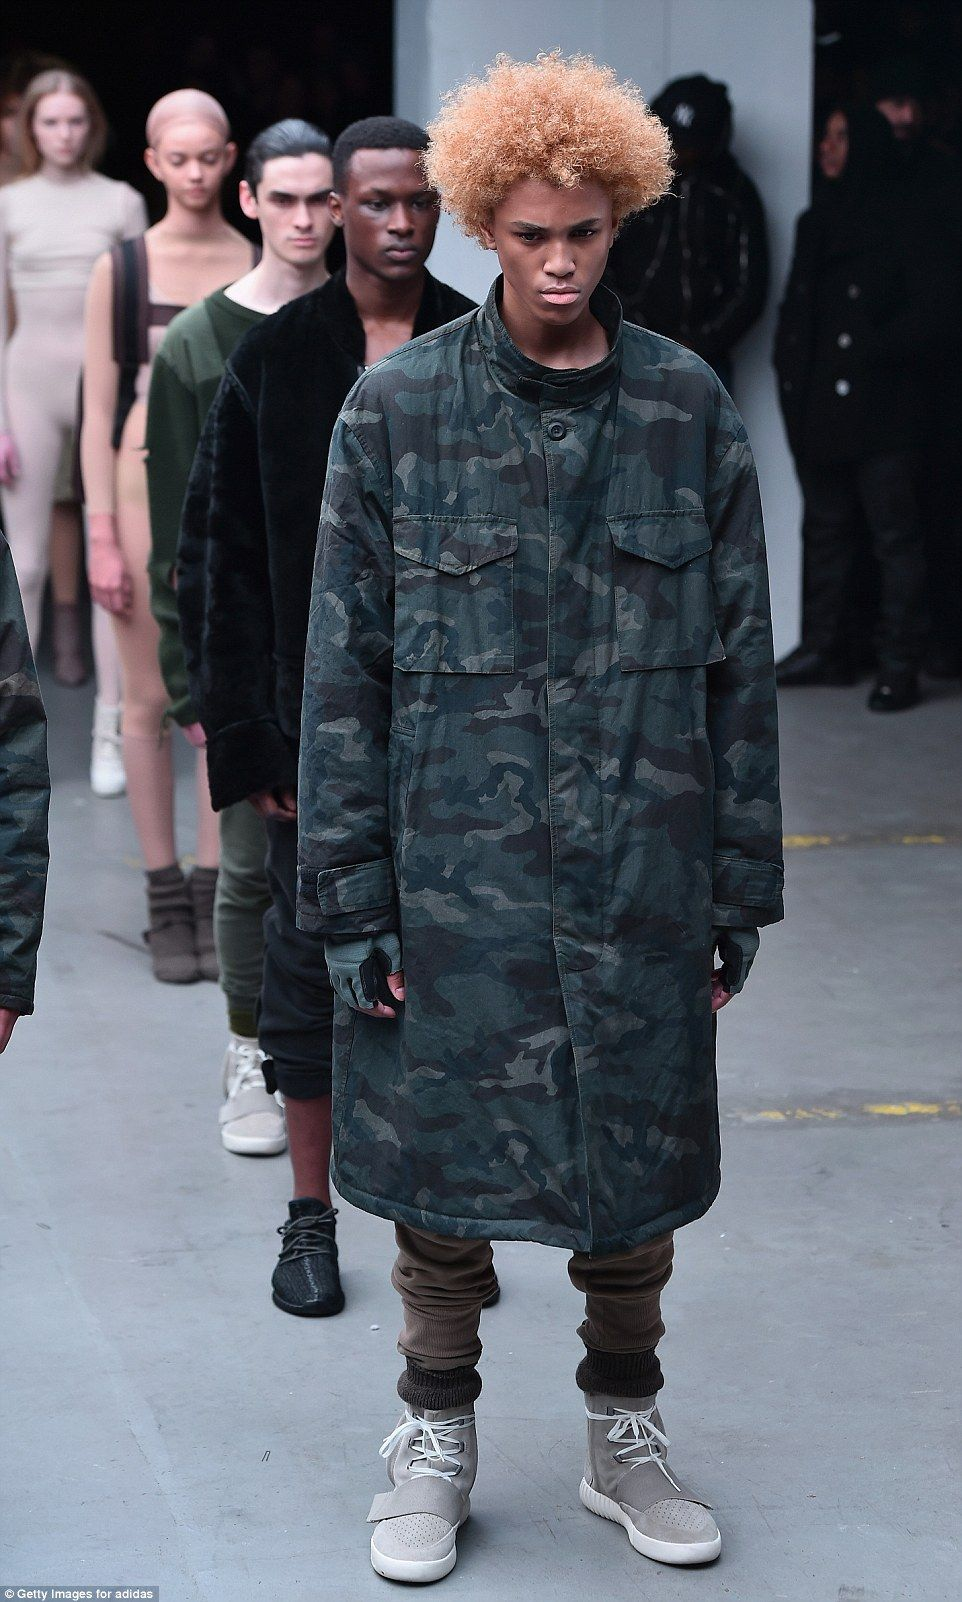 Critics Respond To Kanye West S New Fashion Line With Adidas Kanye West Adidas Kanye West Adidas Originals Yeezy Outfit